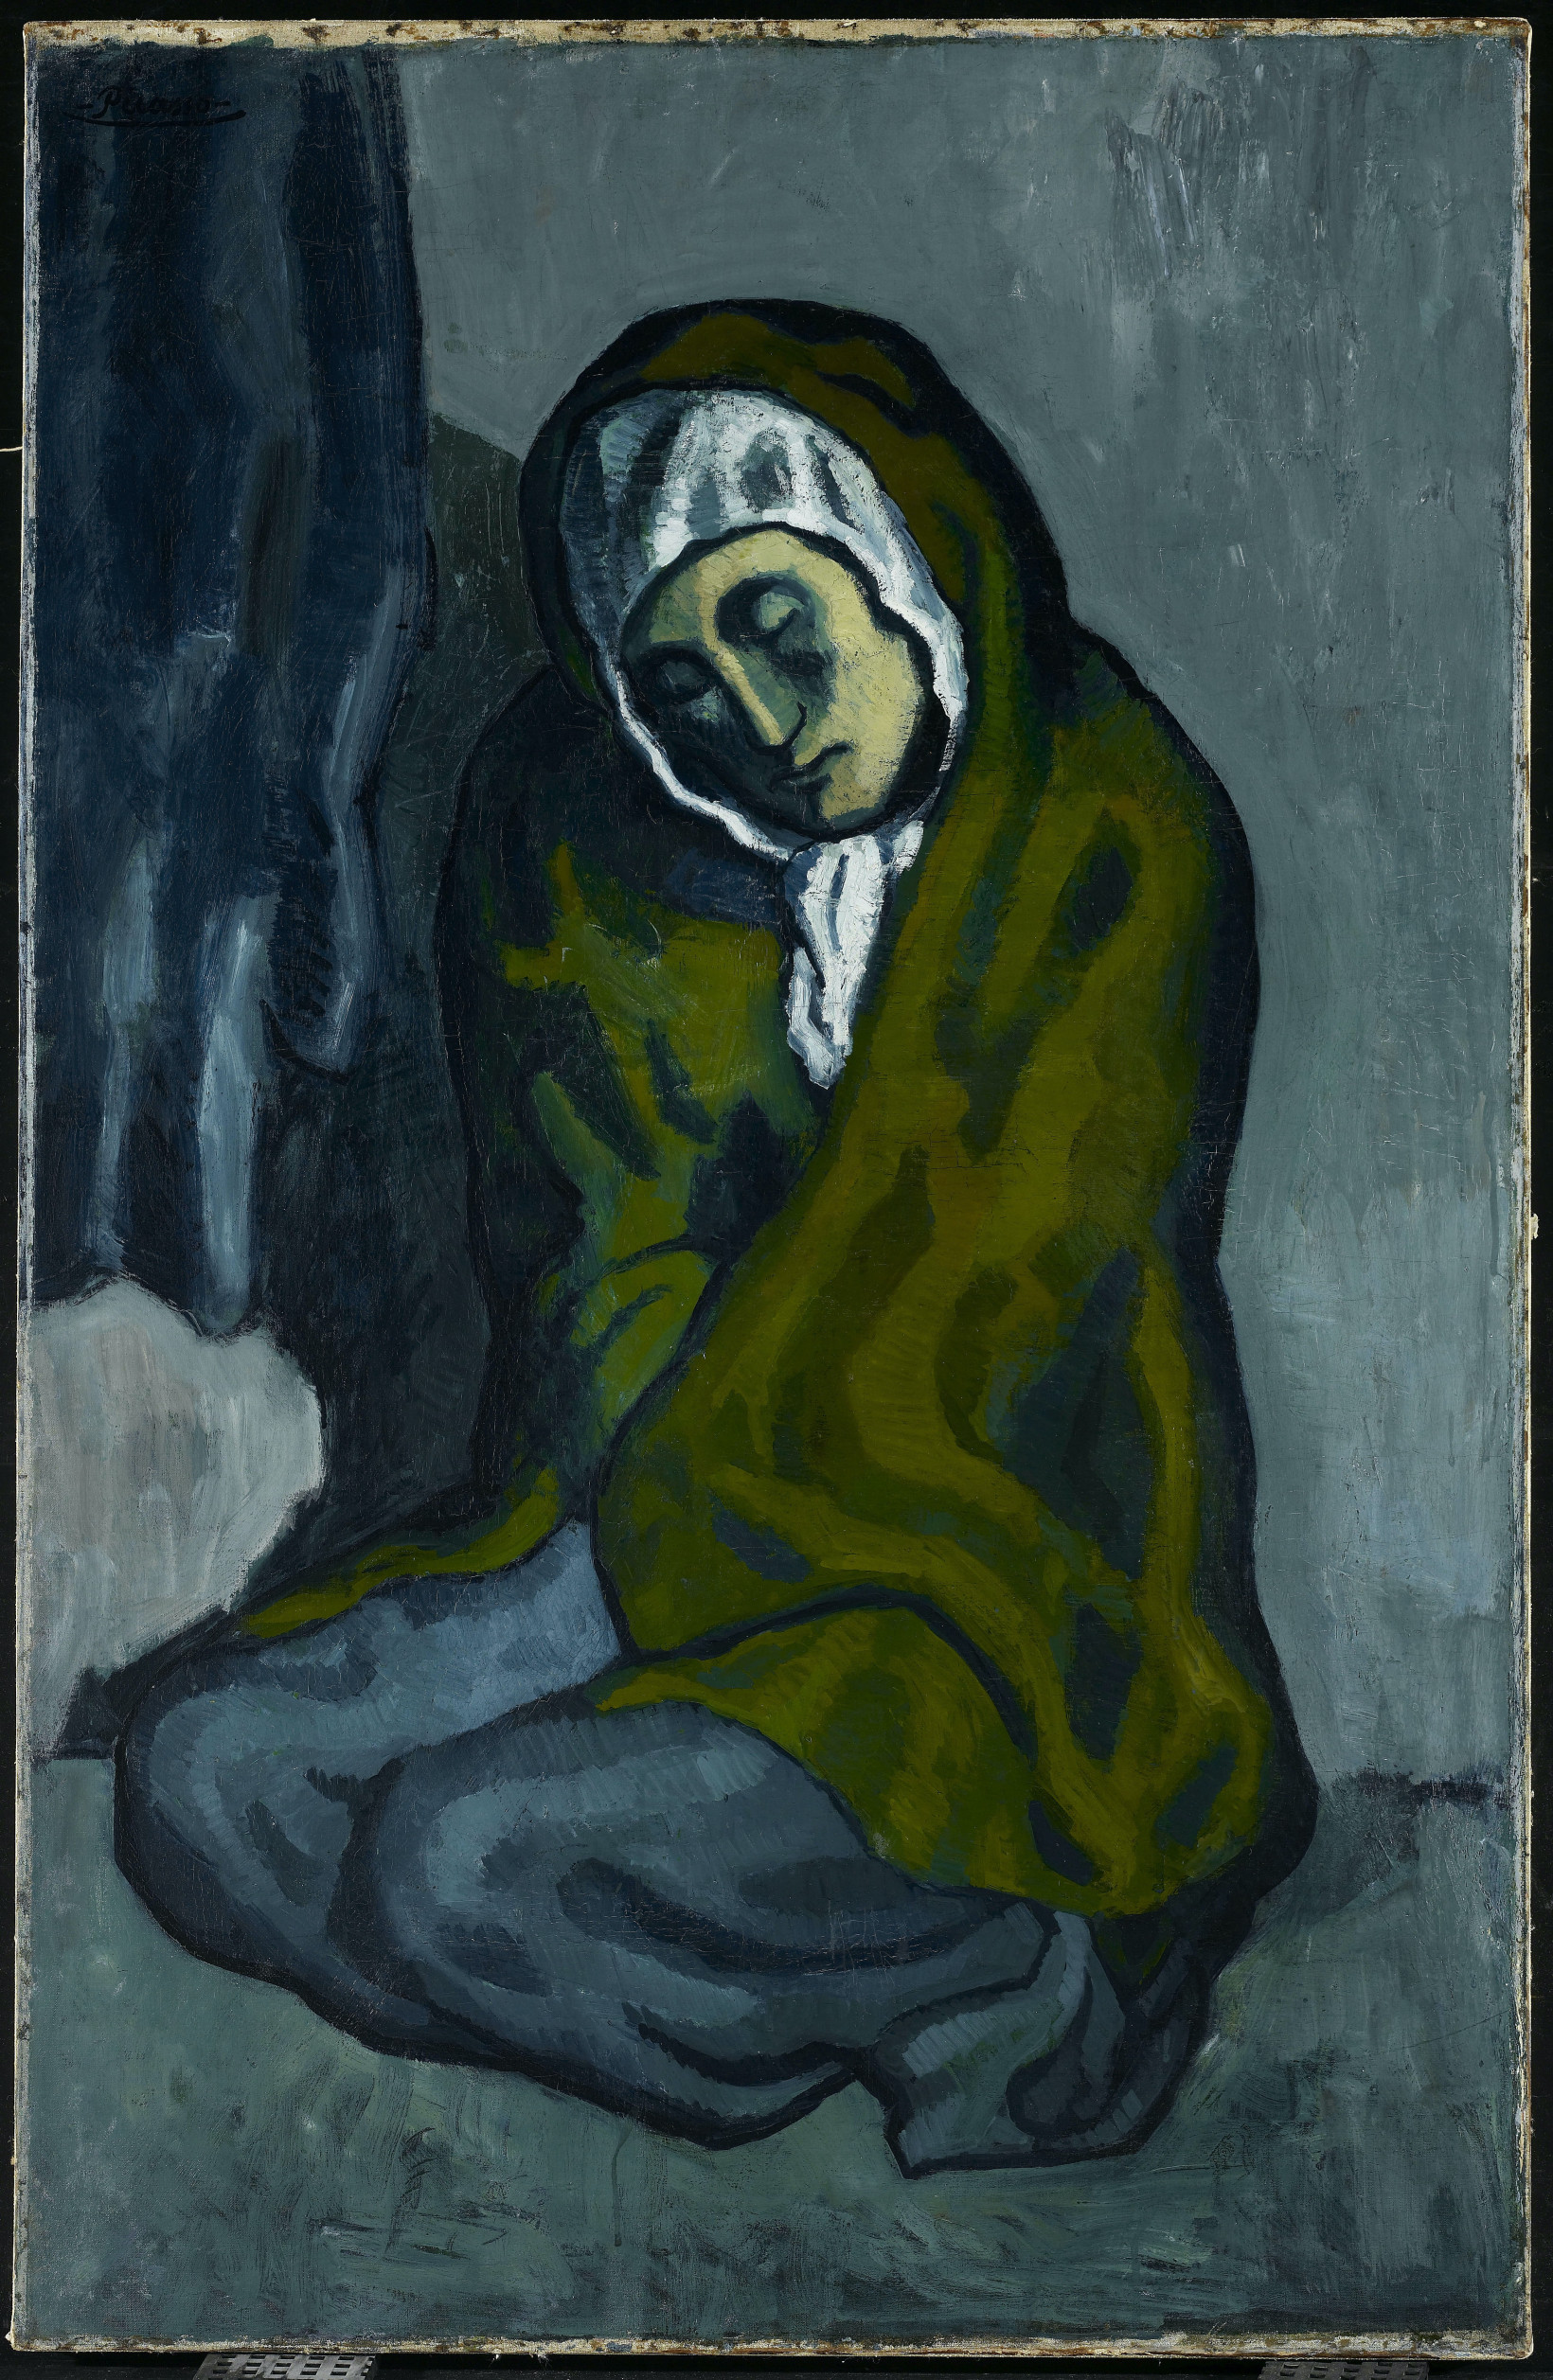 The Crouching Beggar is a major work from Picasso's Blue Period.